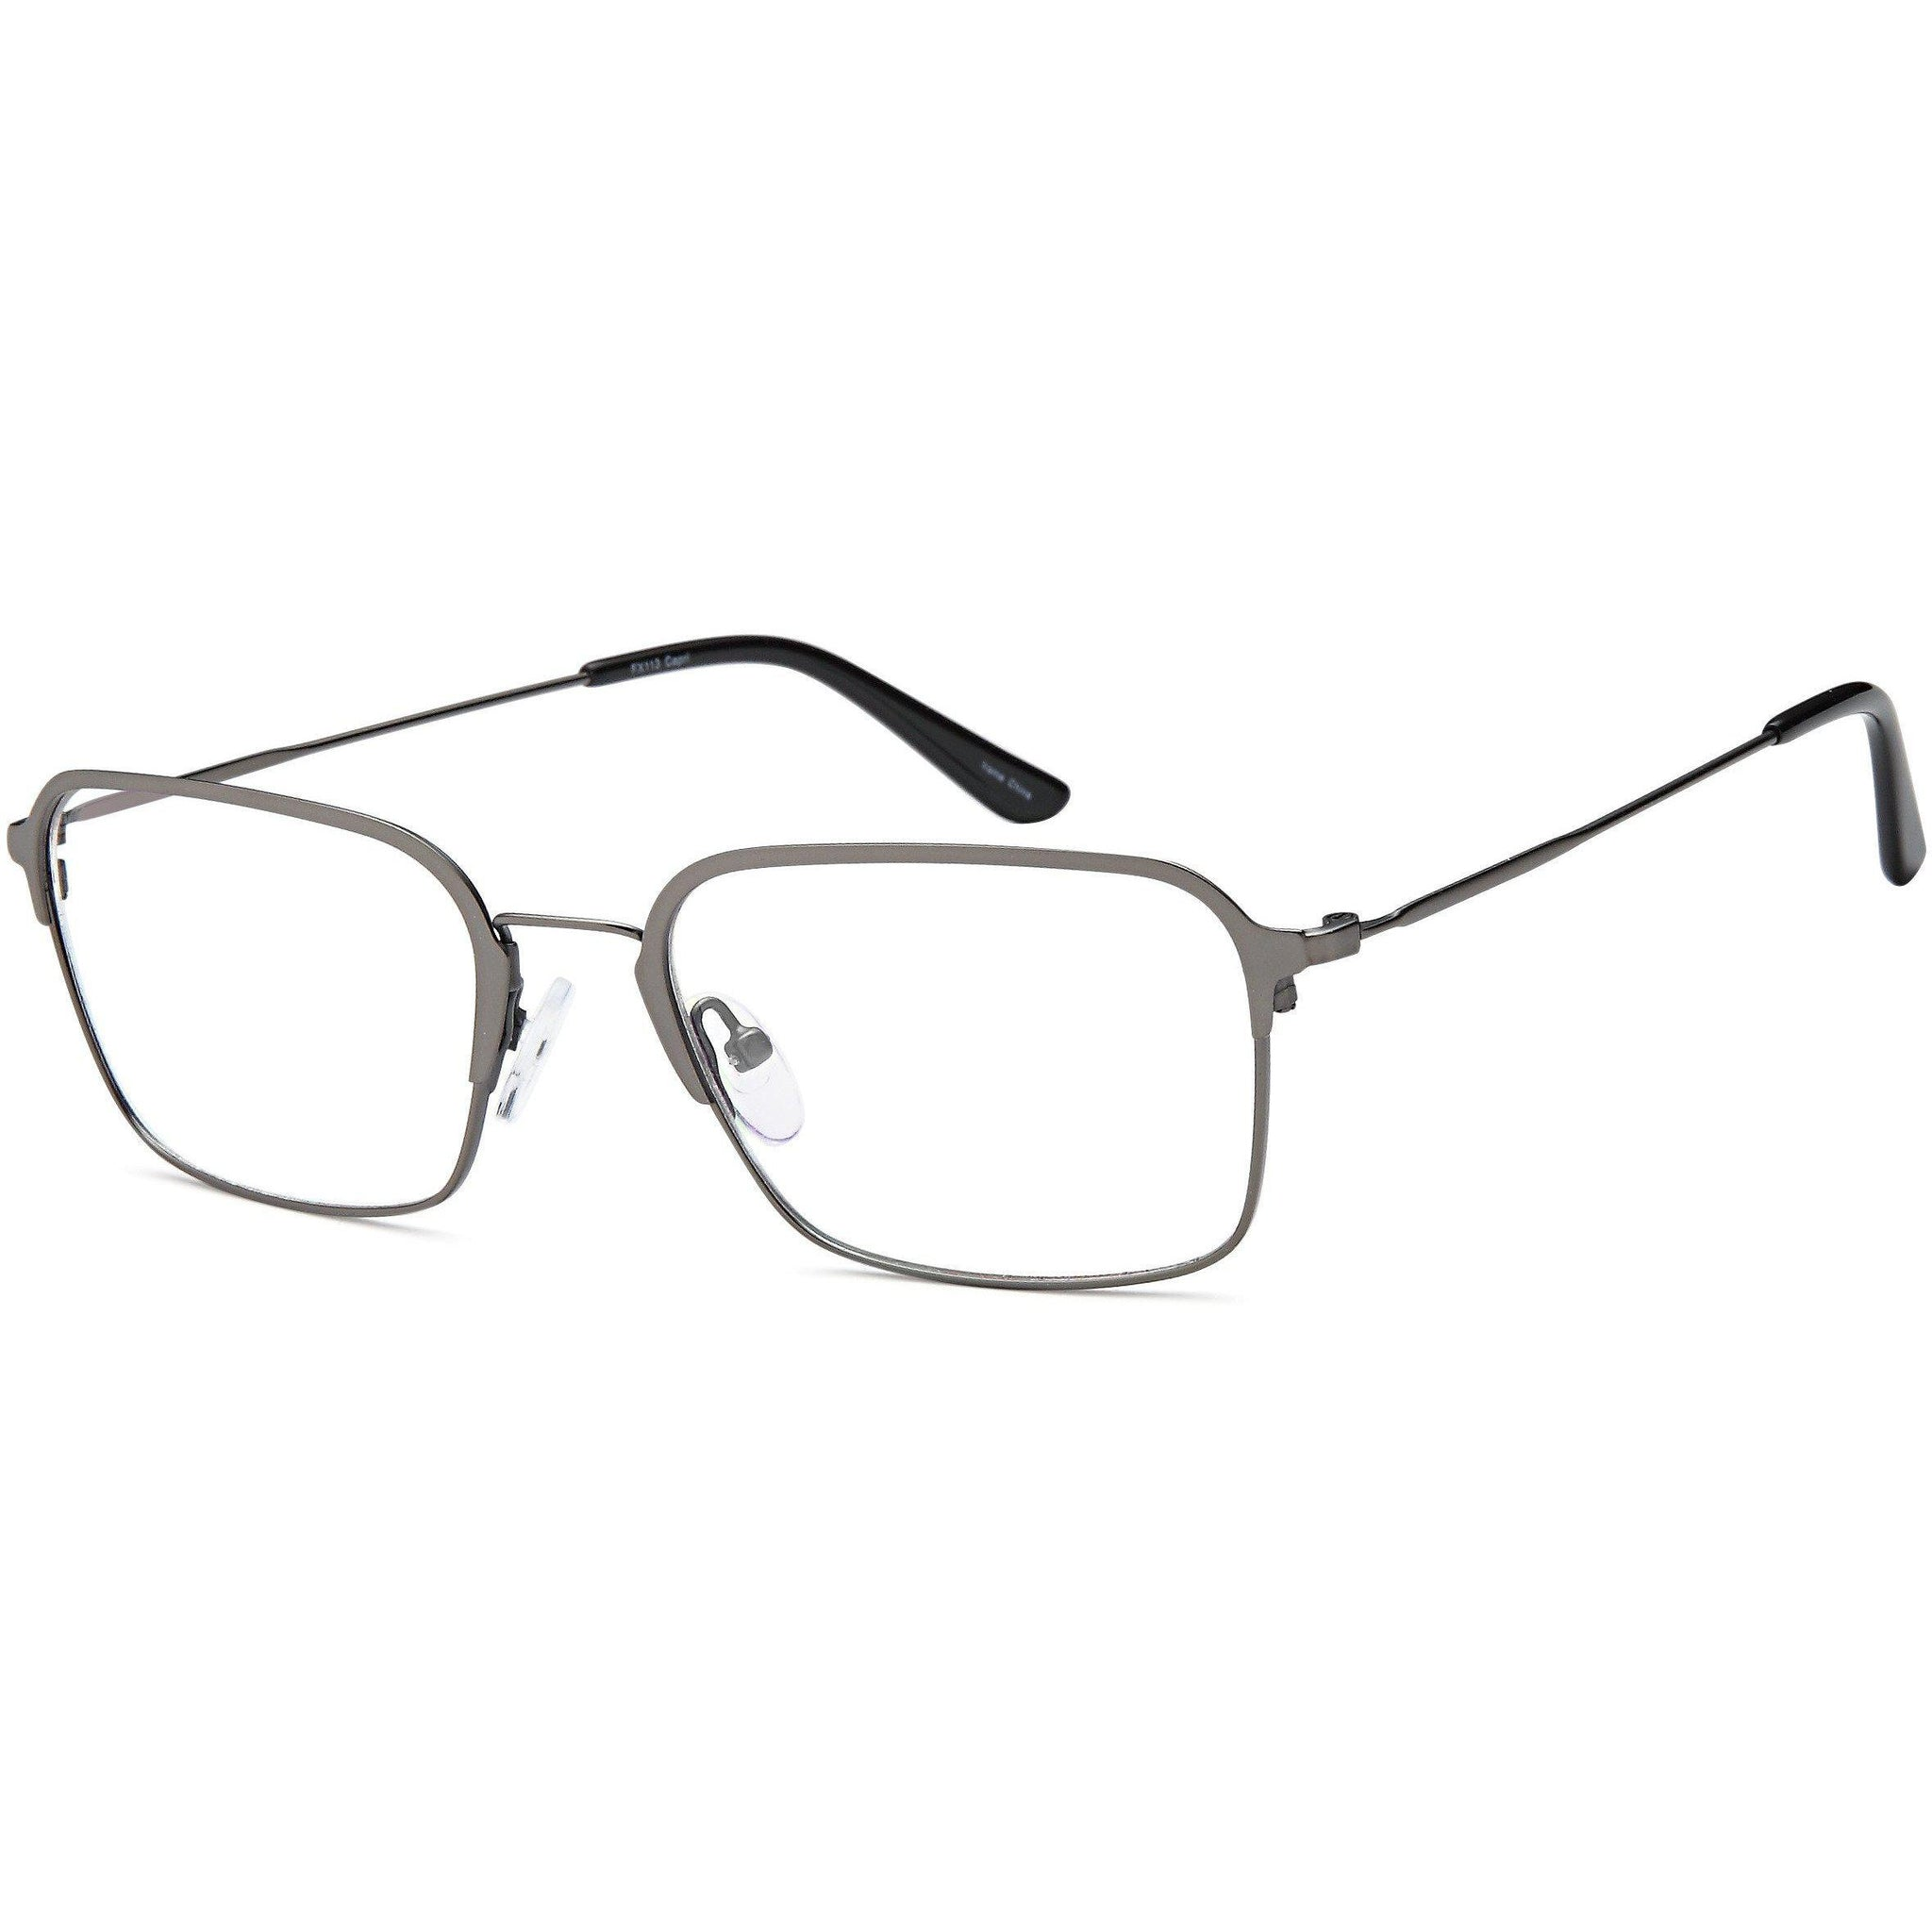 Titanium Prescription Glasses FX 113 Eyeglasses Frame